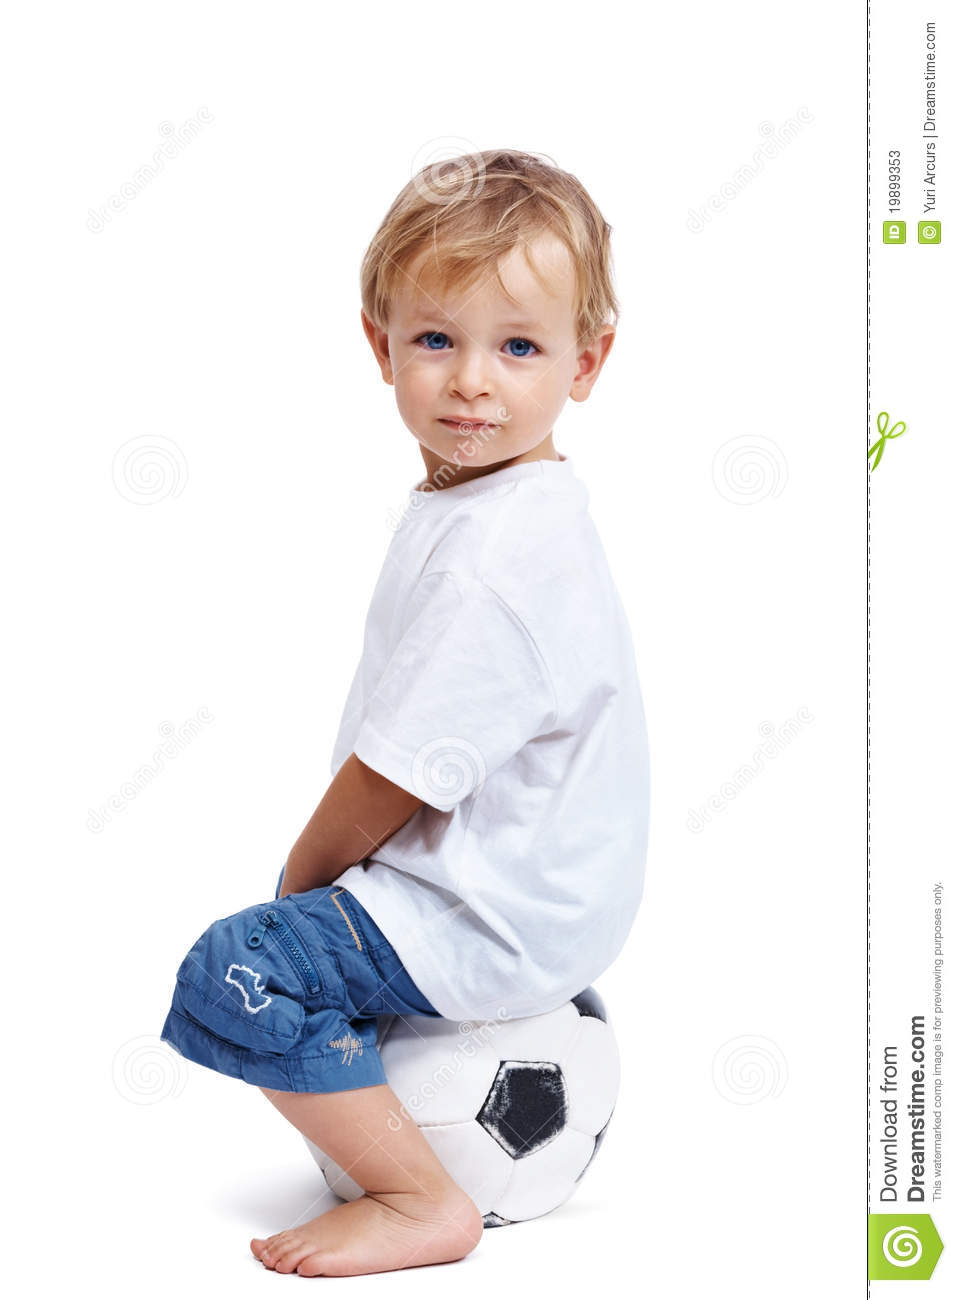 Adorable Small Kid Sitting On The Soccer Ball Stock Image